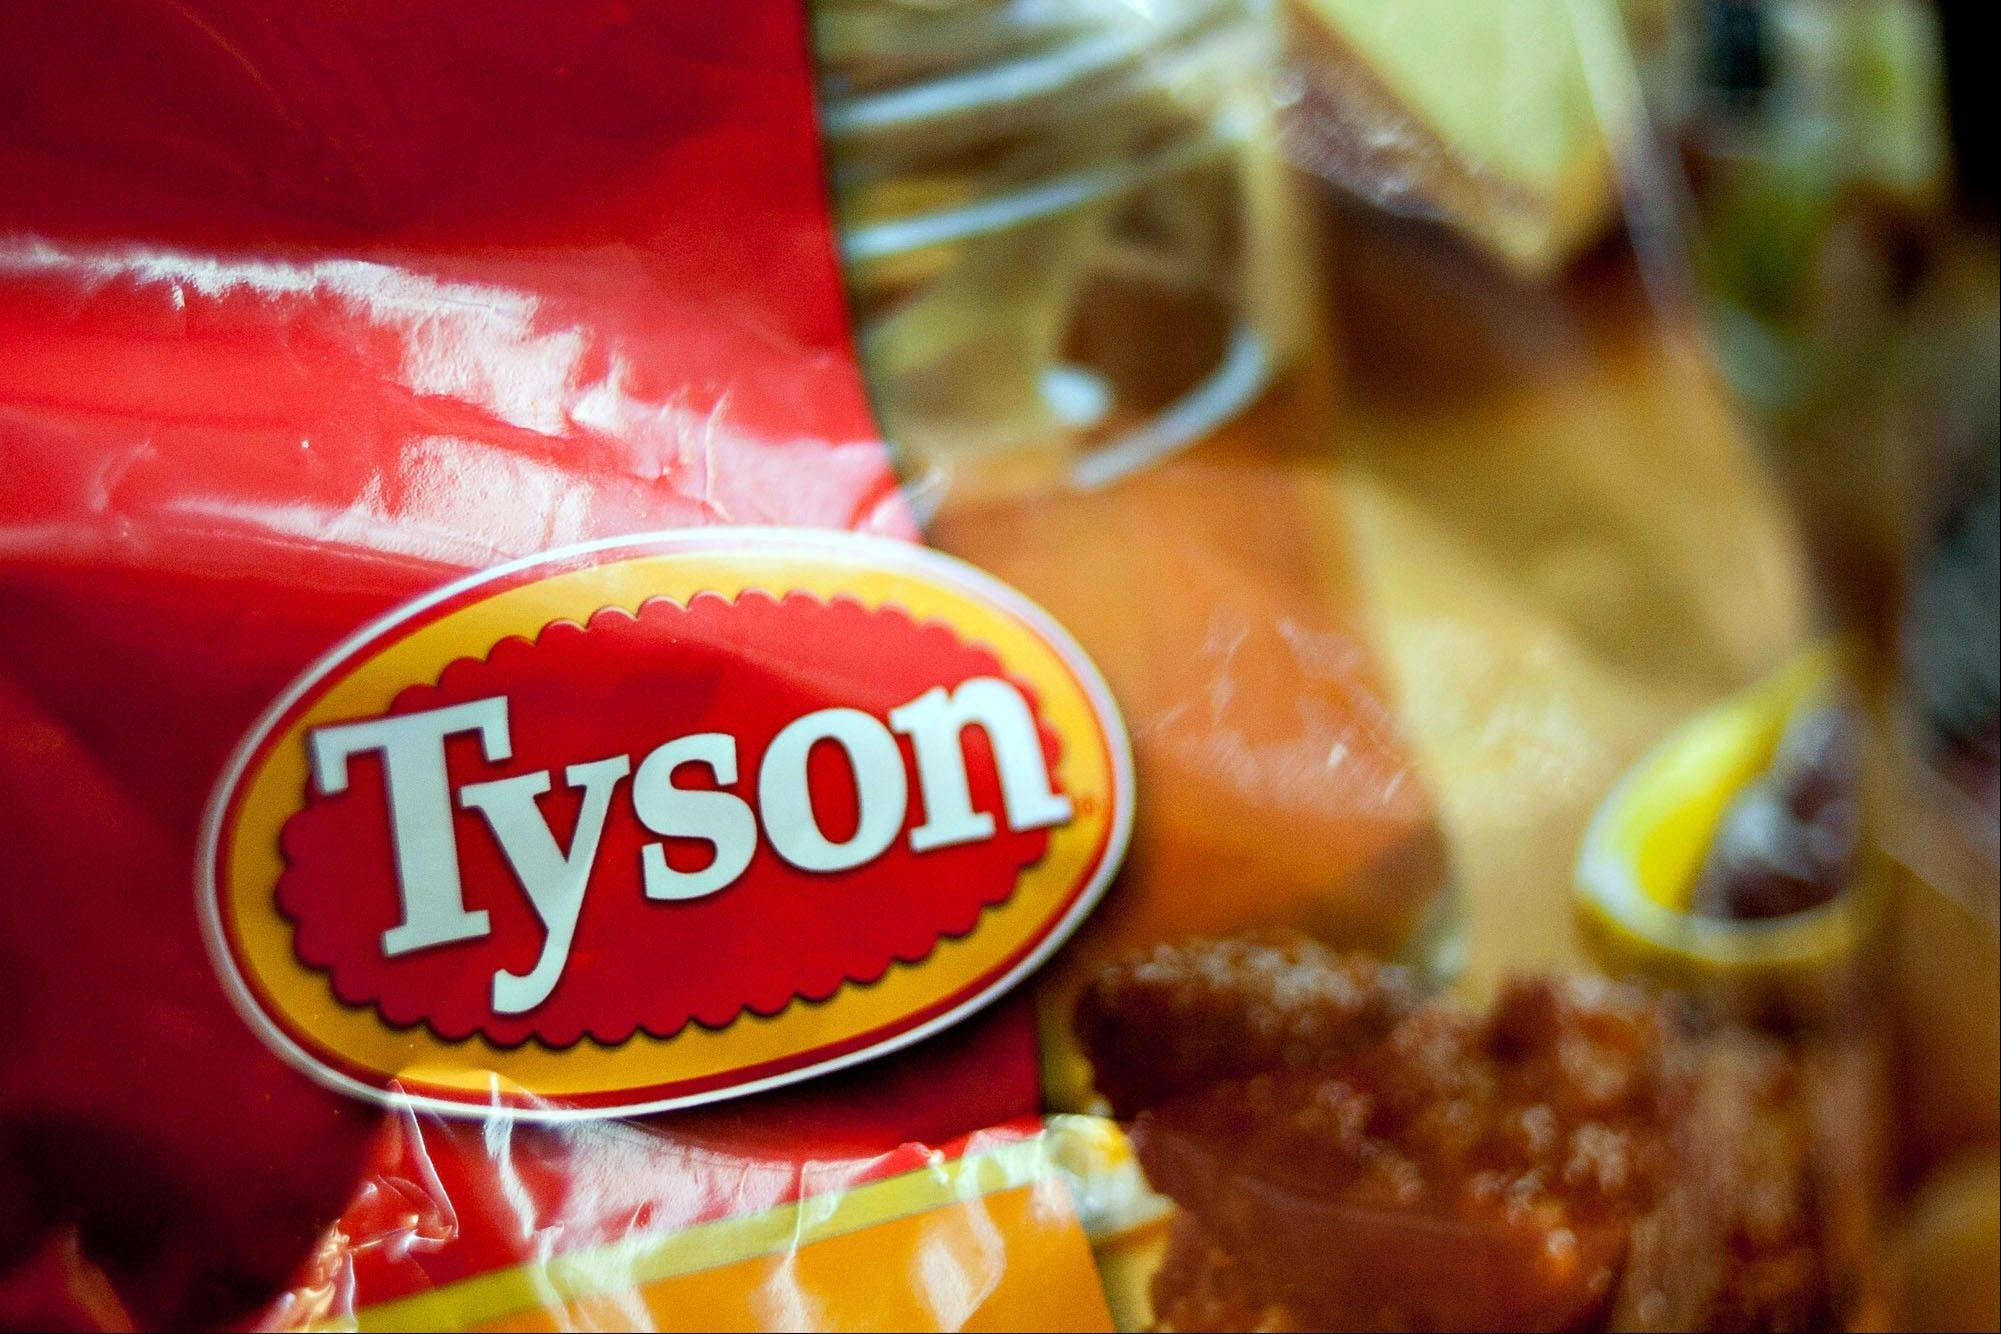 """Some people are shocked we do tortillas,"" said Eric Le Blanc, vice president of marketing for deli and convenience-store foods at Tyson. Tyson is building up its line of prepared foods to dominate the convenience-store market."